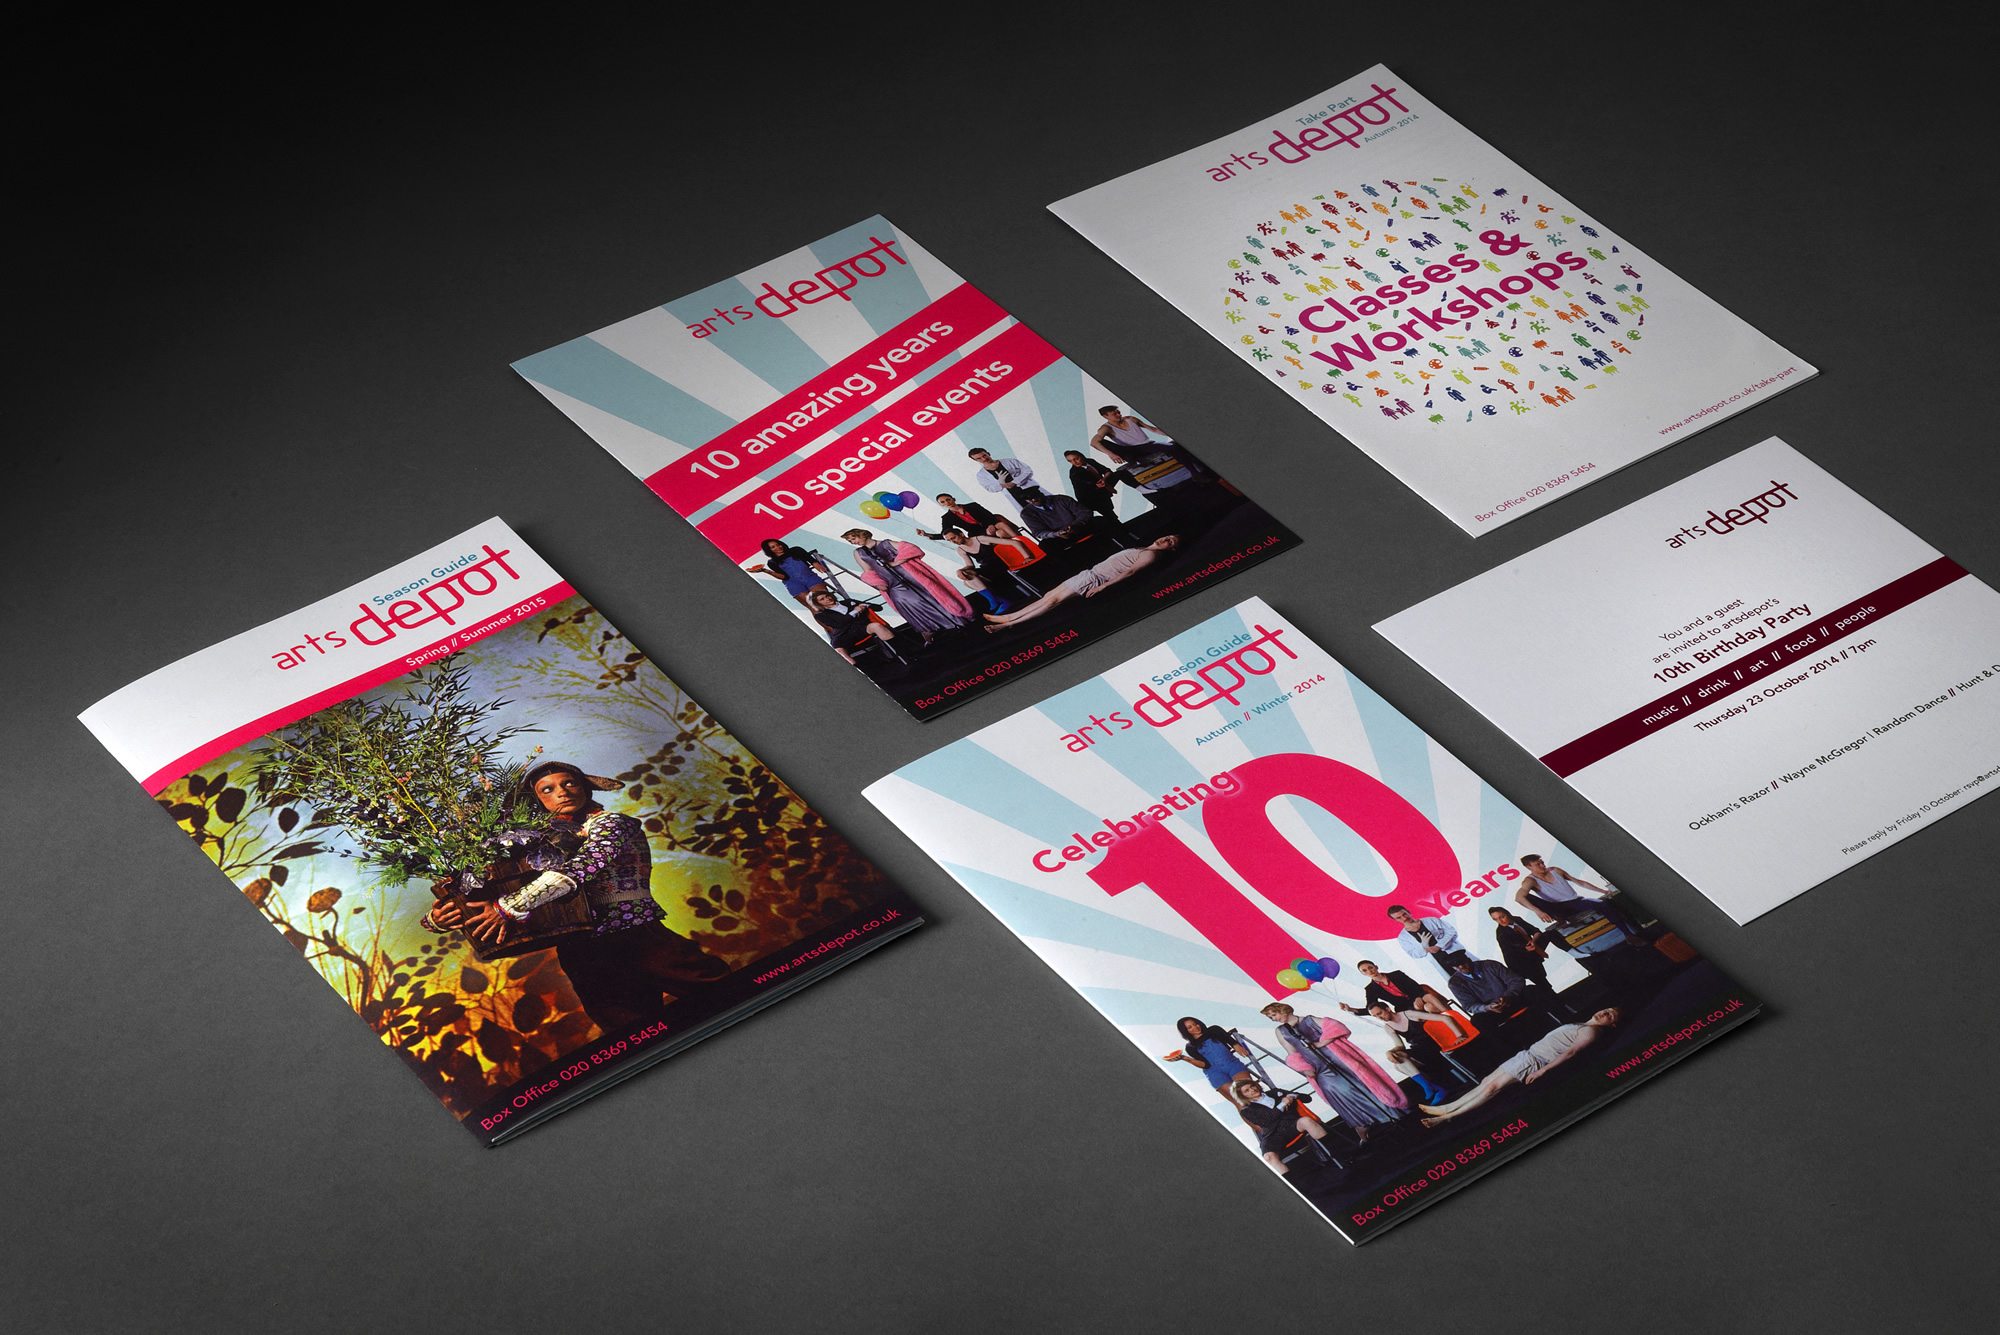 arts-depot-event-brochure-design-lrg